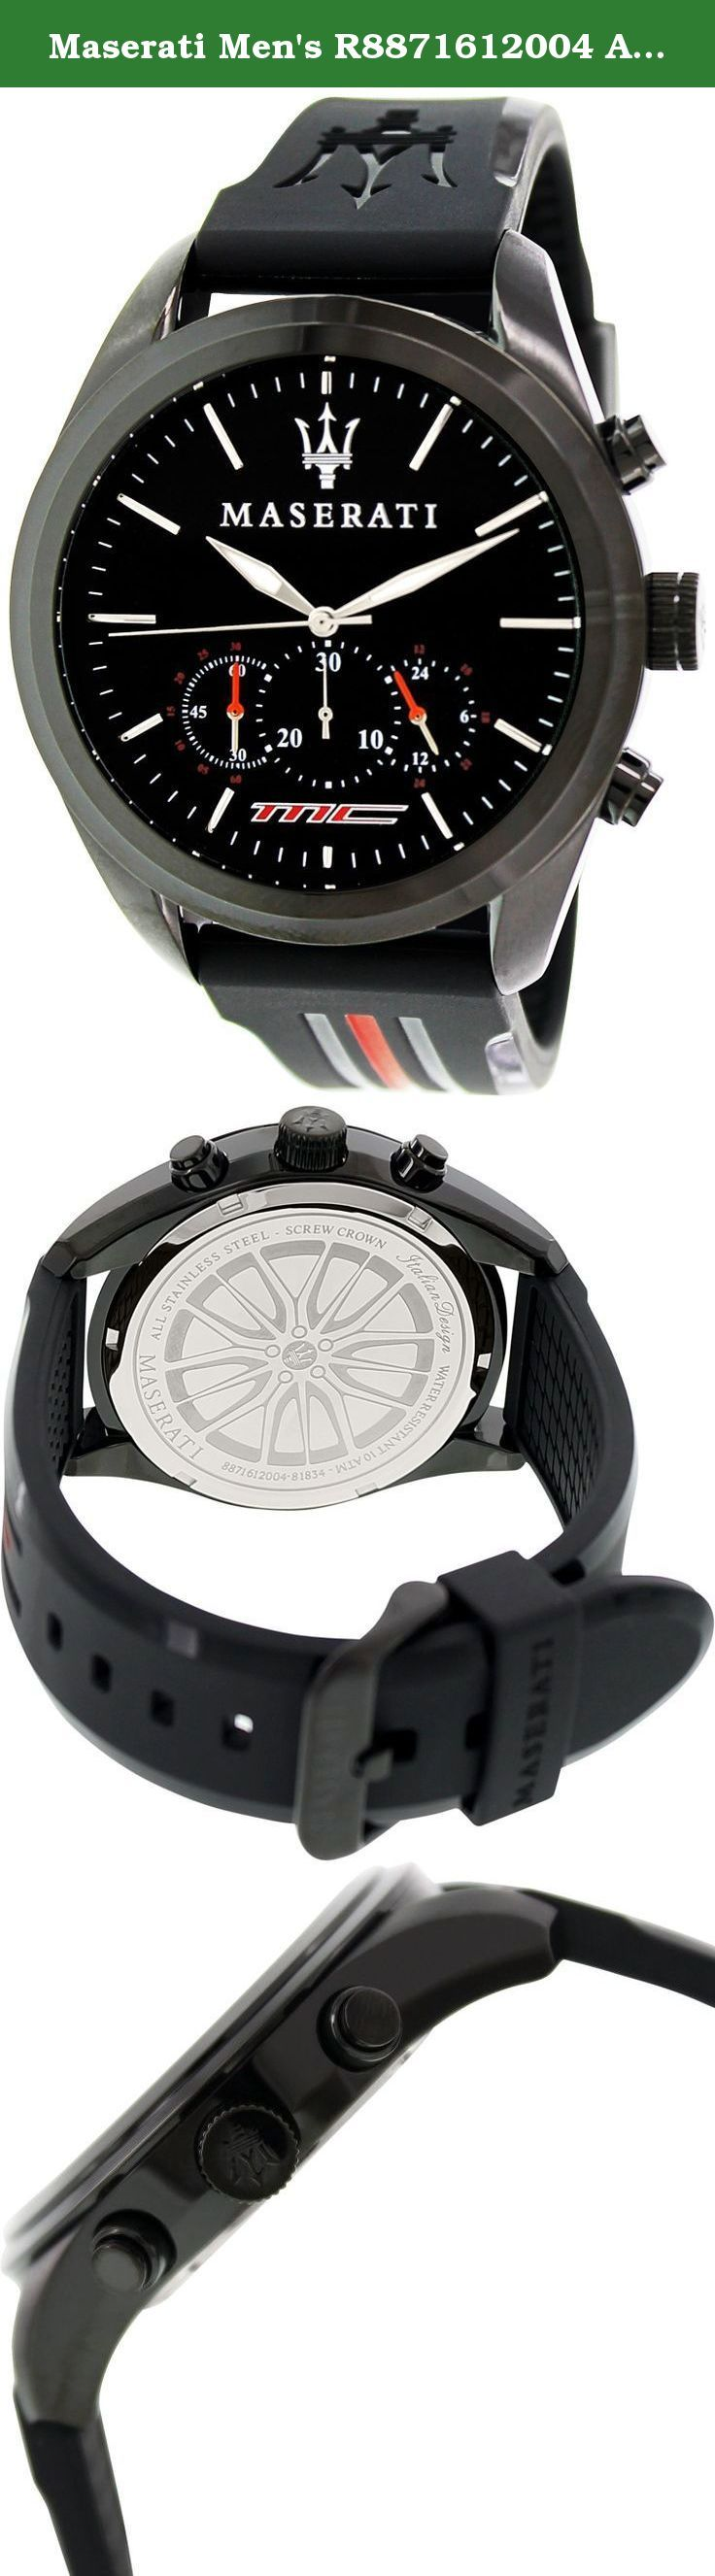 Maserati Men's R8871612004 Analog Display Quartz Black Watch. Maserati R8871612004 Traguardo chronograph unisex watch features a 42mm wide and 13mm thick black ion plated solid stainless steel case with a fixed bezel and textured screw down crown with function pushers. Maserati R8871612004 is powered by quartz chronograph movement. This stylish watch also features a textured shiny sunray black dial with white accents silver tone luminous hands and index hour markers along with the...